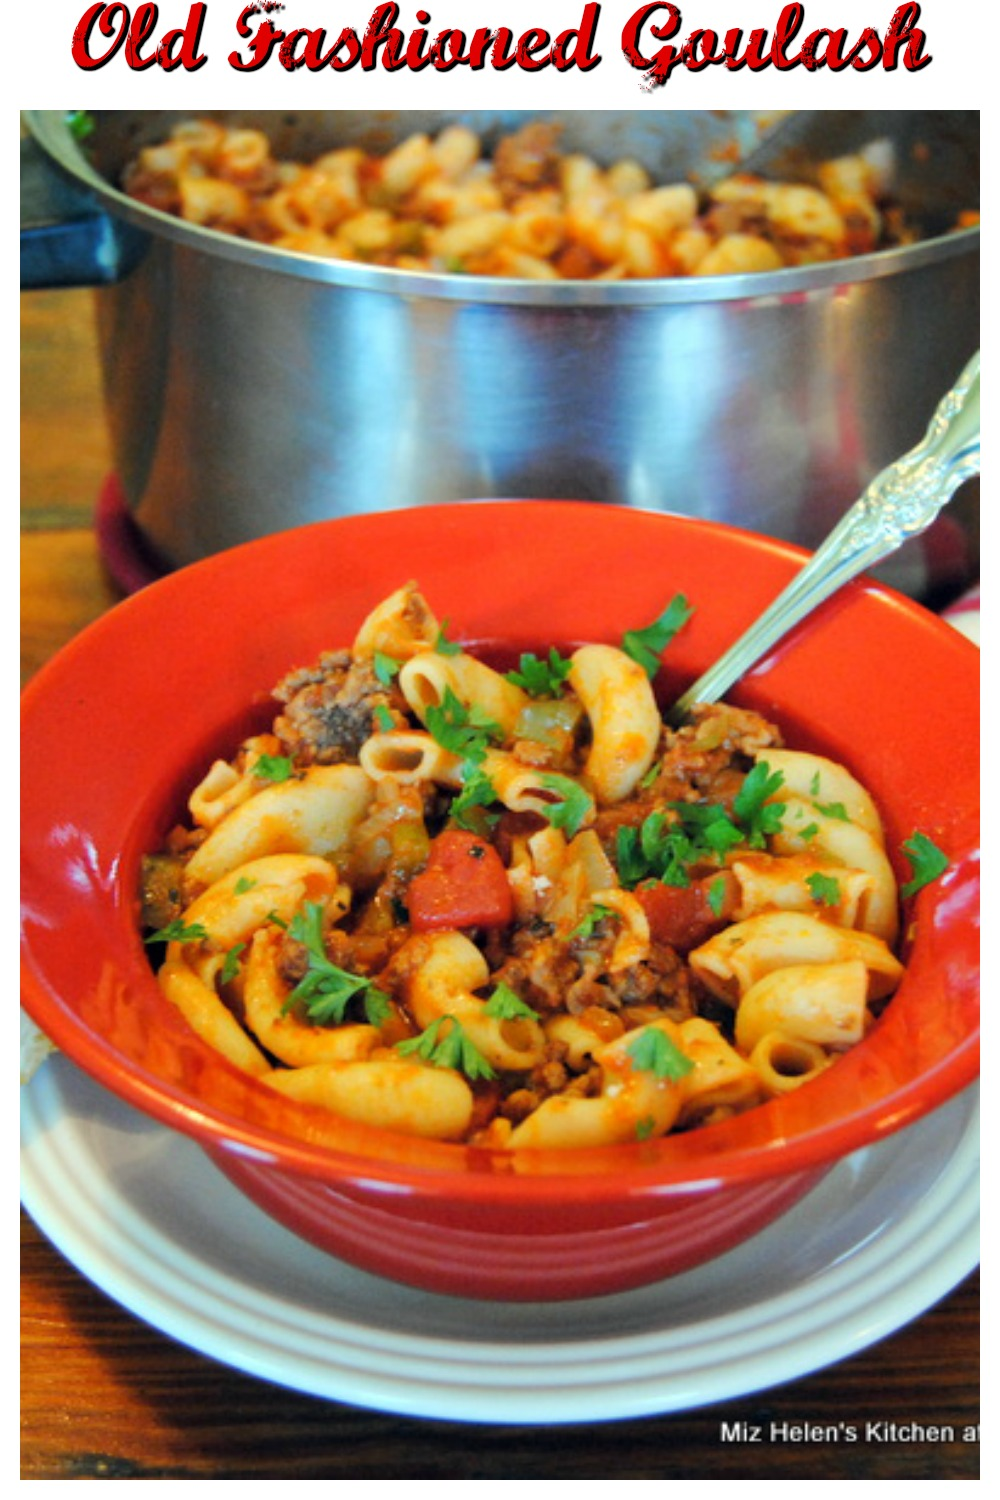 Old Fashioned One Pot Goulash